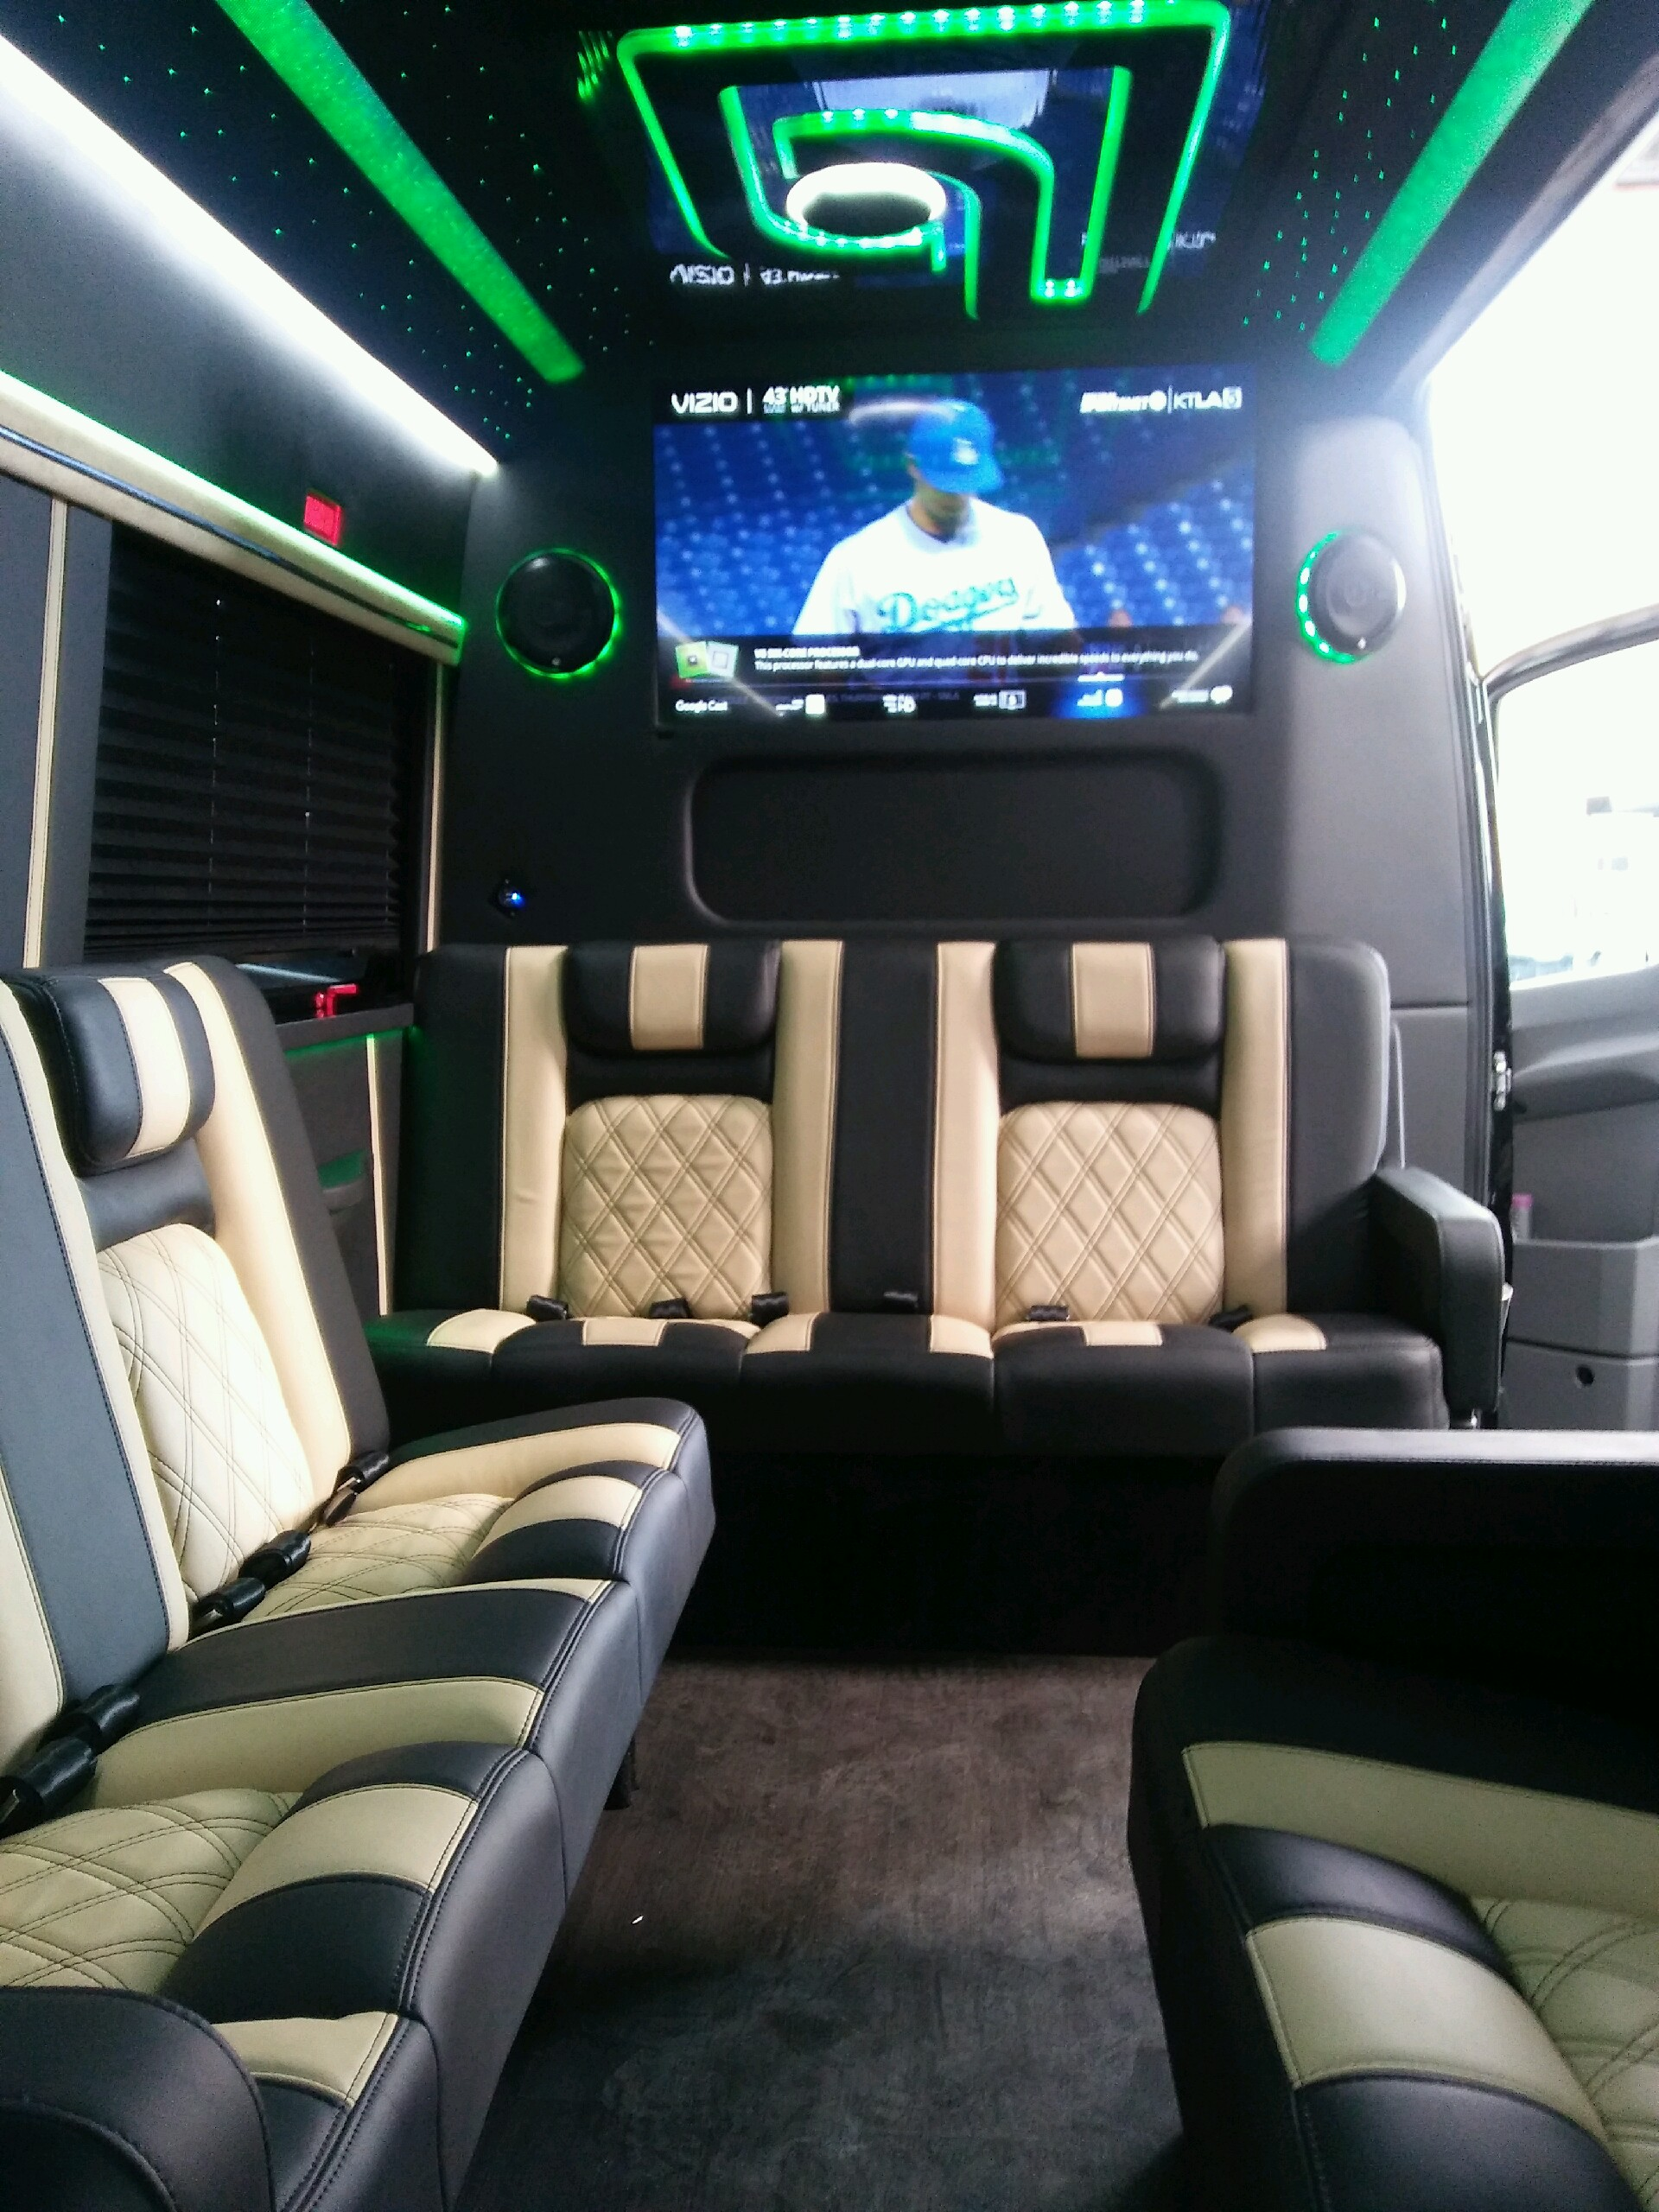 2017 Mercedes Benz 3500 Luxury Sprinter Limo For Sale